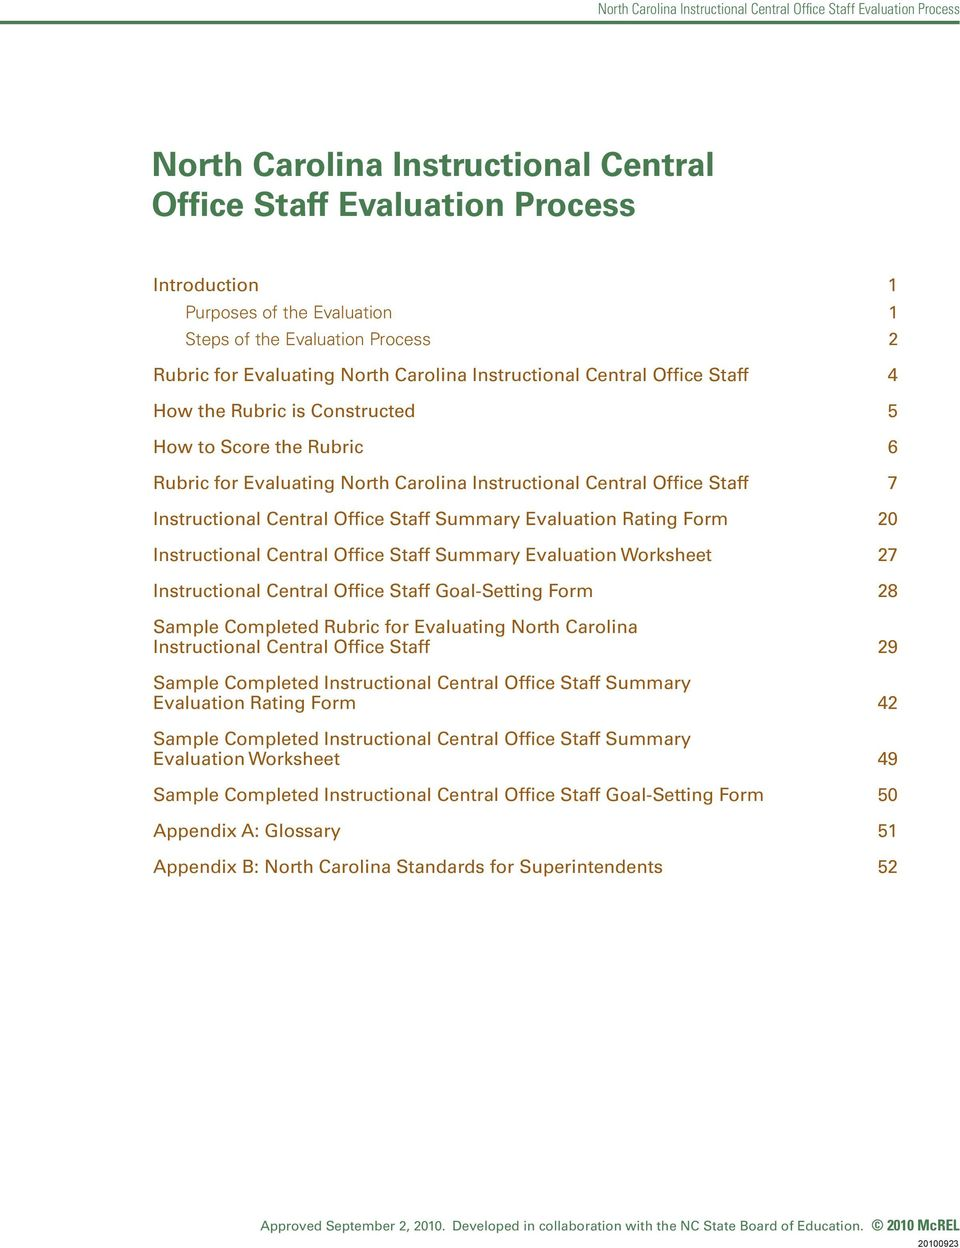 Evaluation Rating Form 20 Instructional Central Office Staff Summary Evaluation Worksheet 27 Instructional Central Office Staff Goal-Setting Form 28 Sample Completed Rubric for Evaluating North